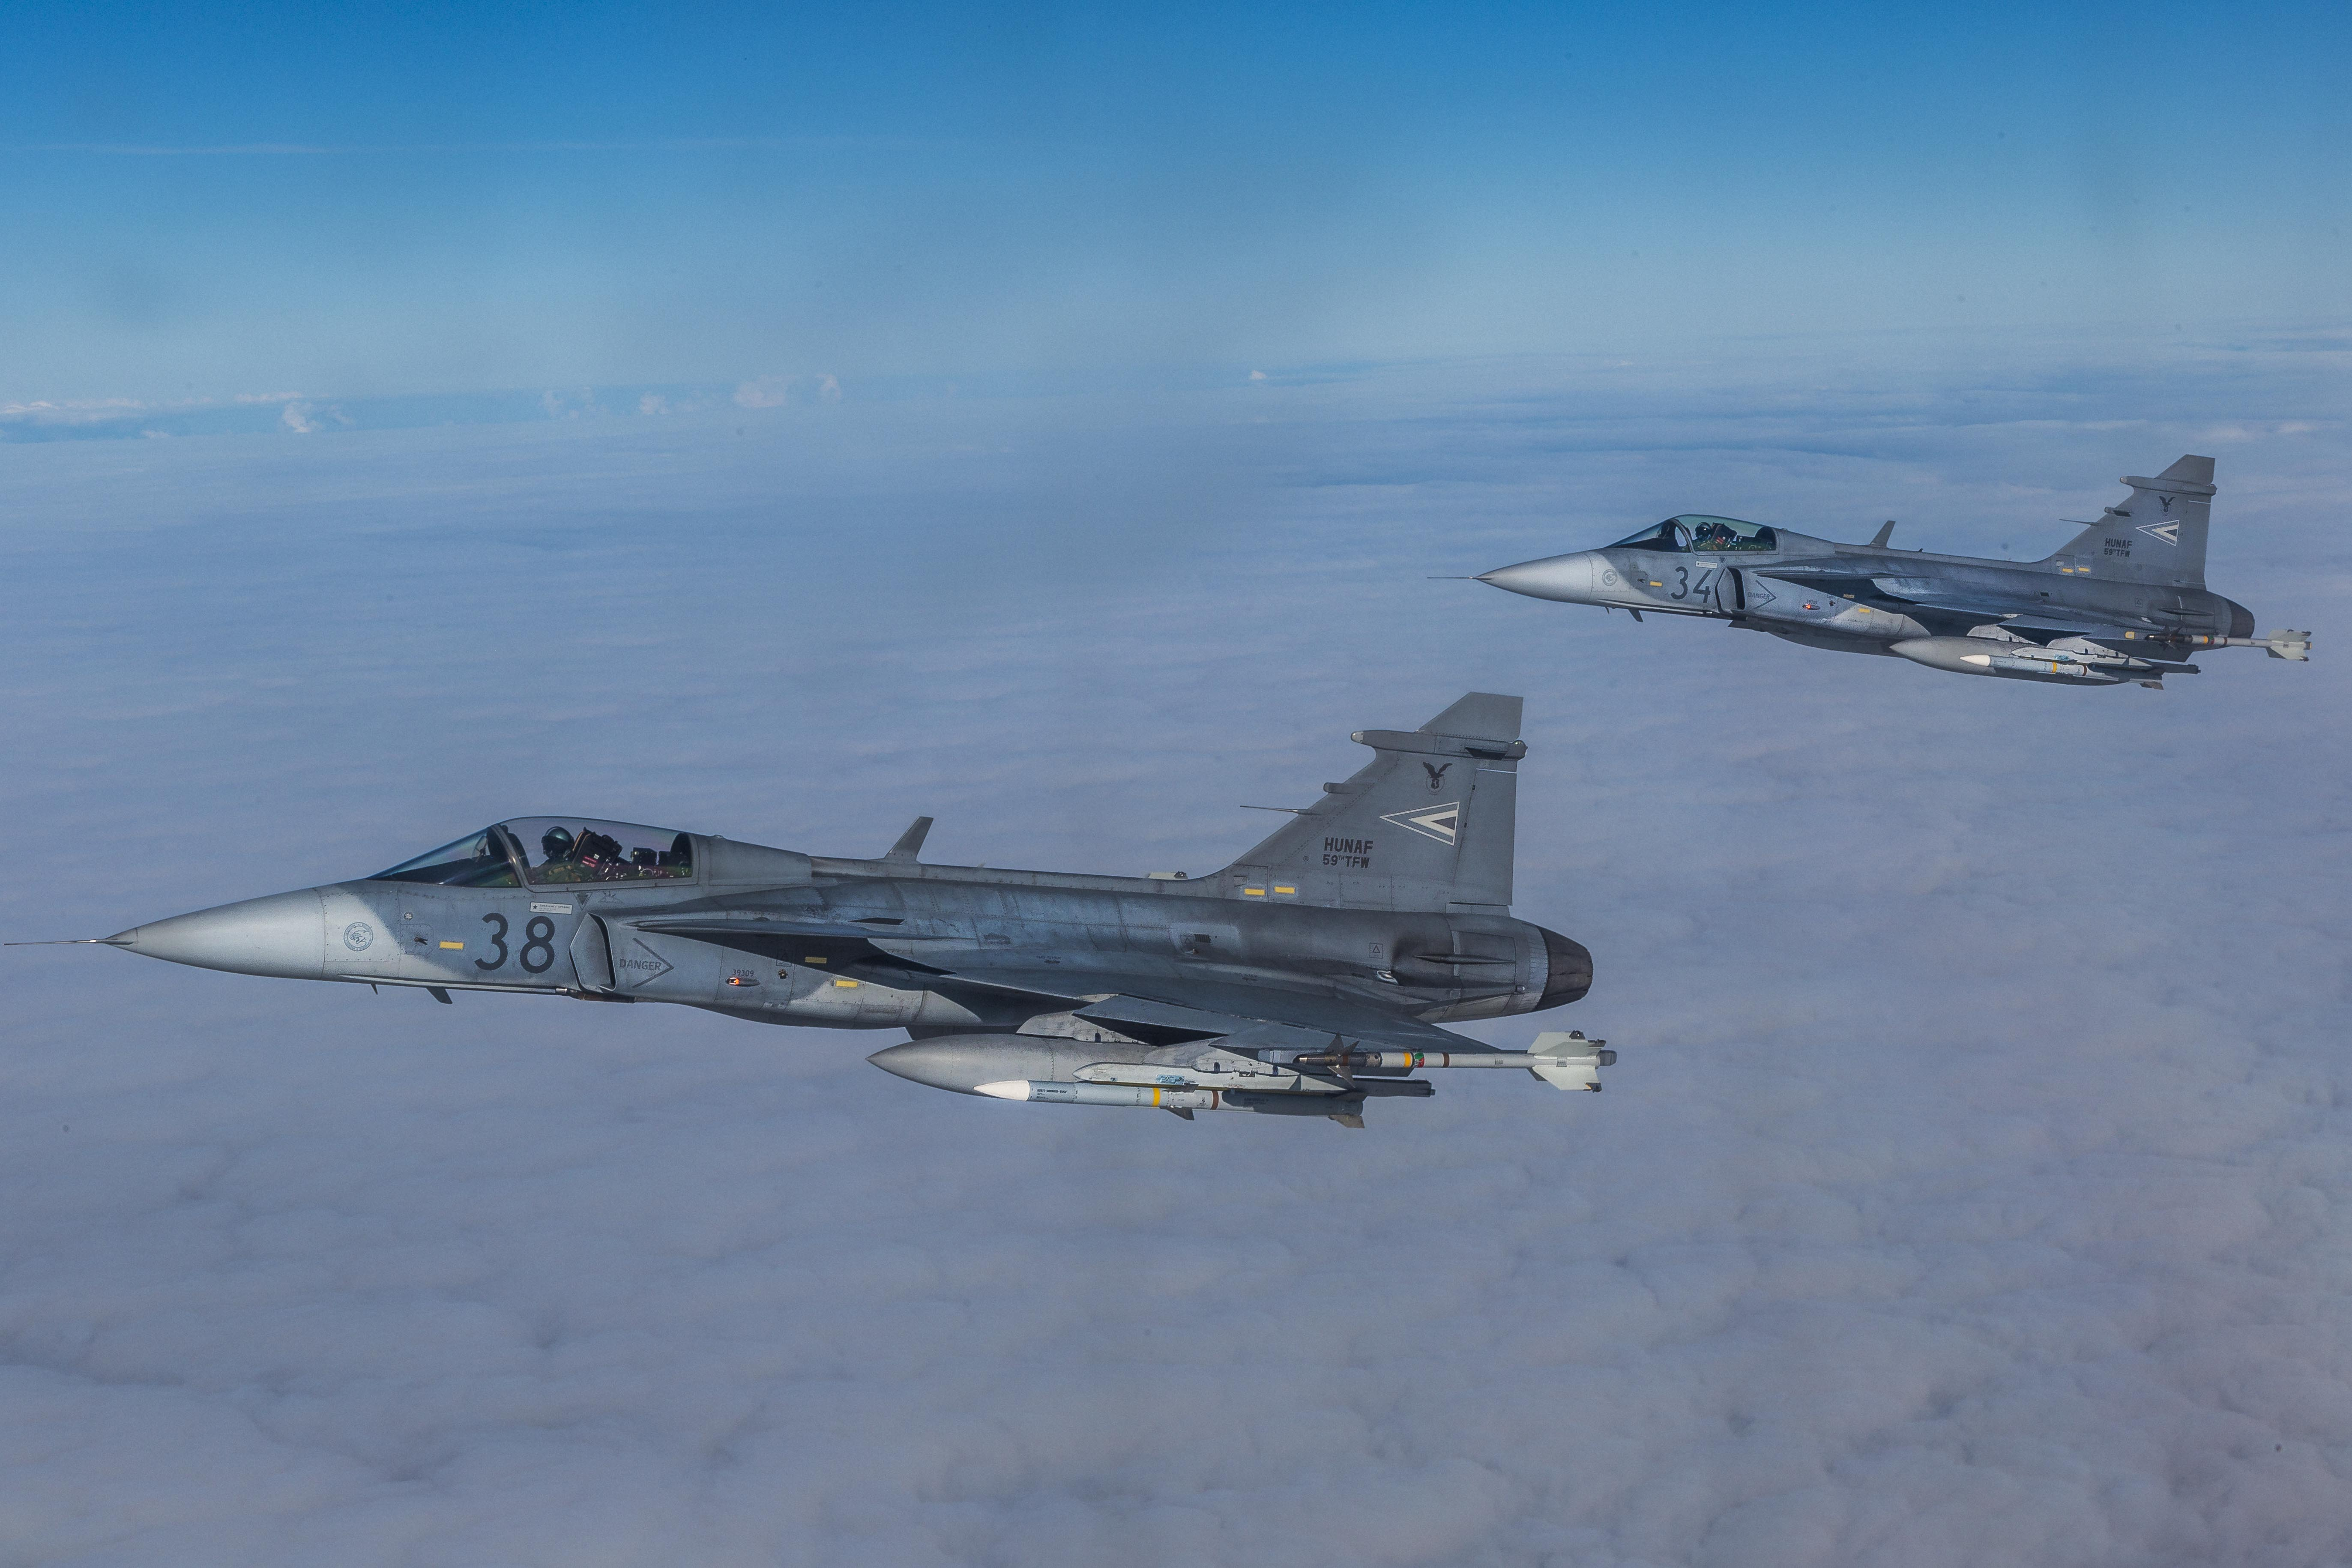 Hungarian Air Force Gripen fighters